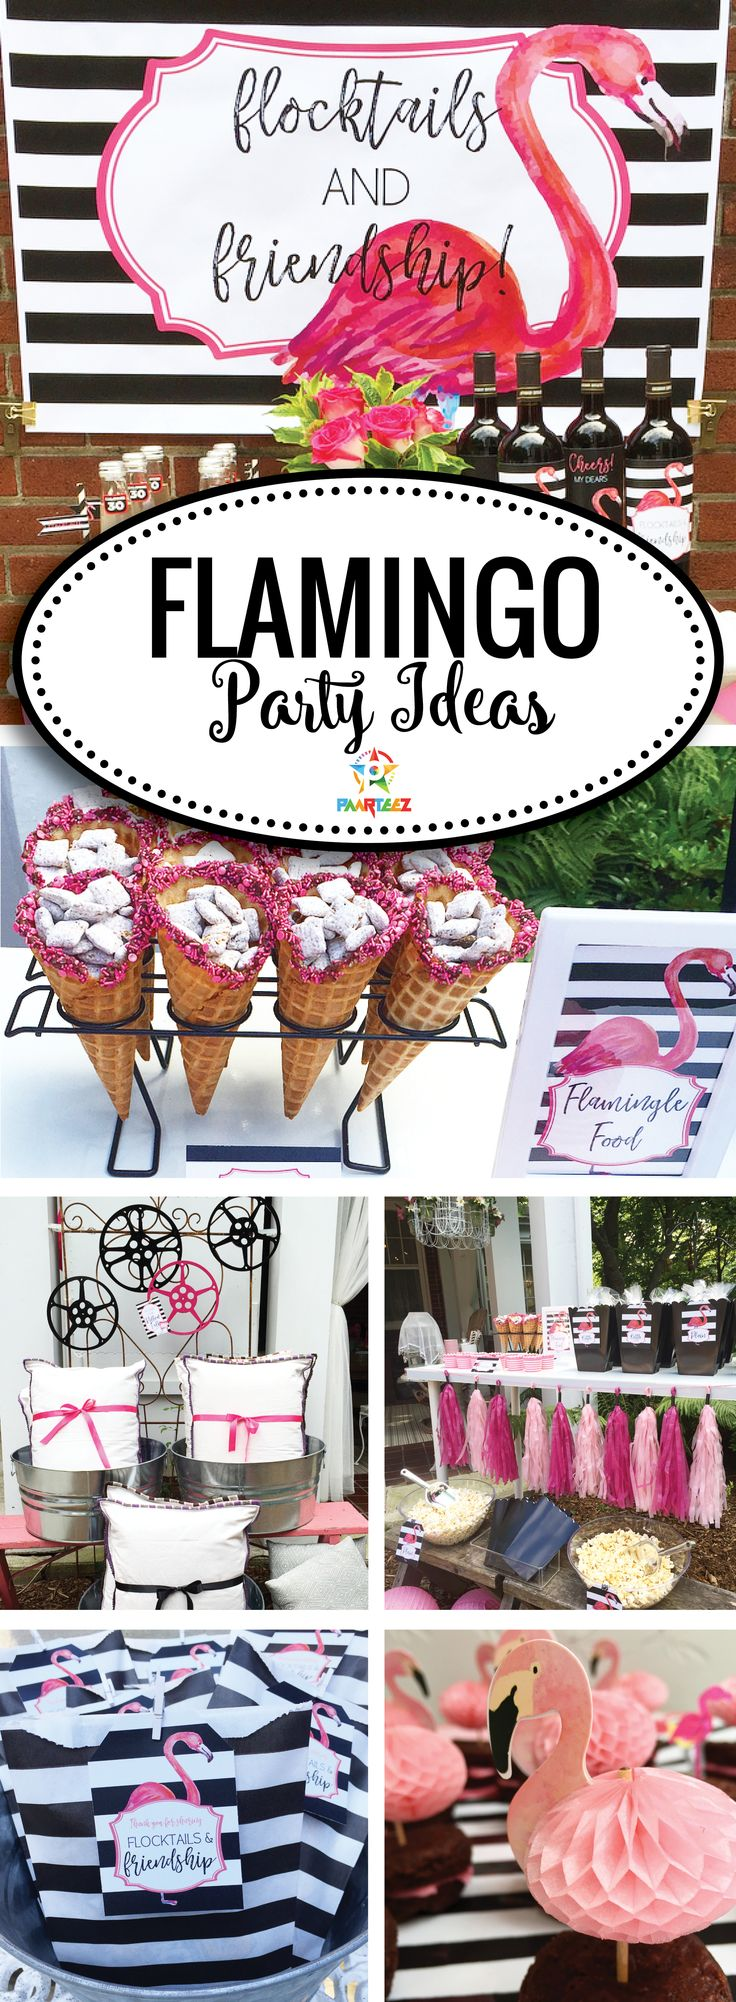 Flocktails & Friendship - Outdoors Movie Night Party Ideas!